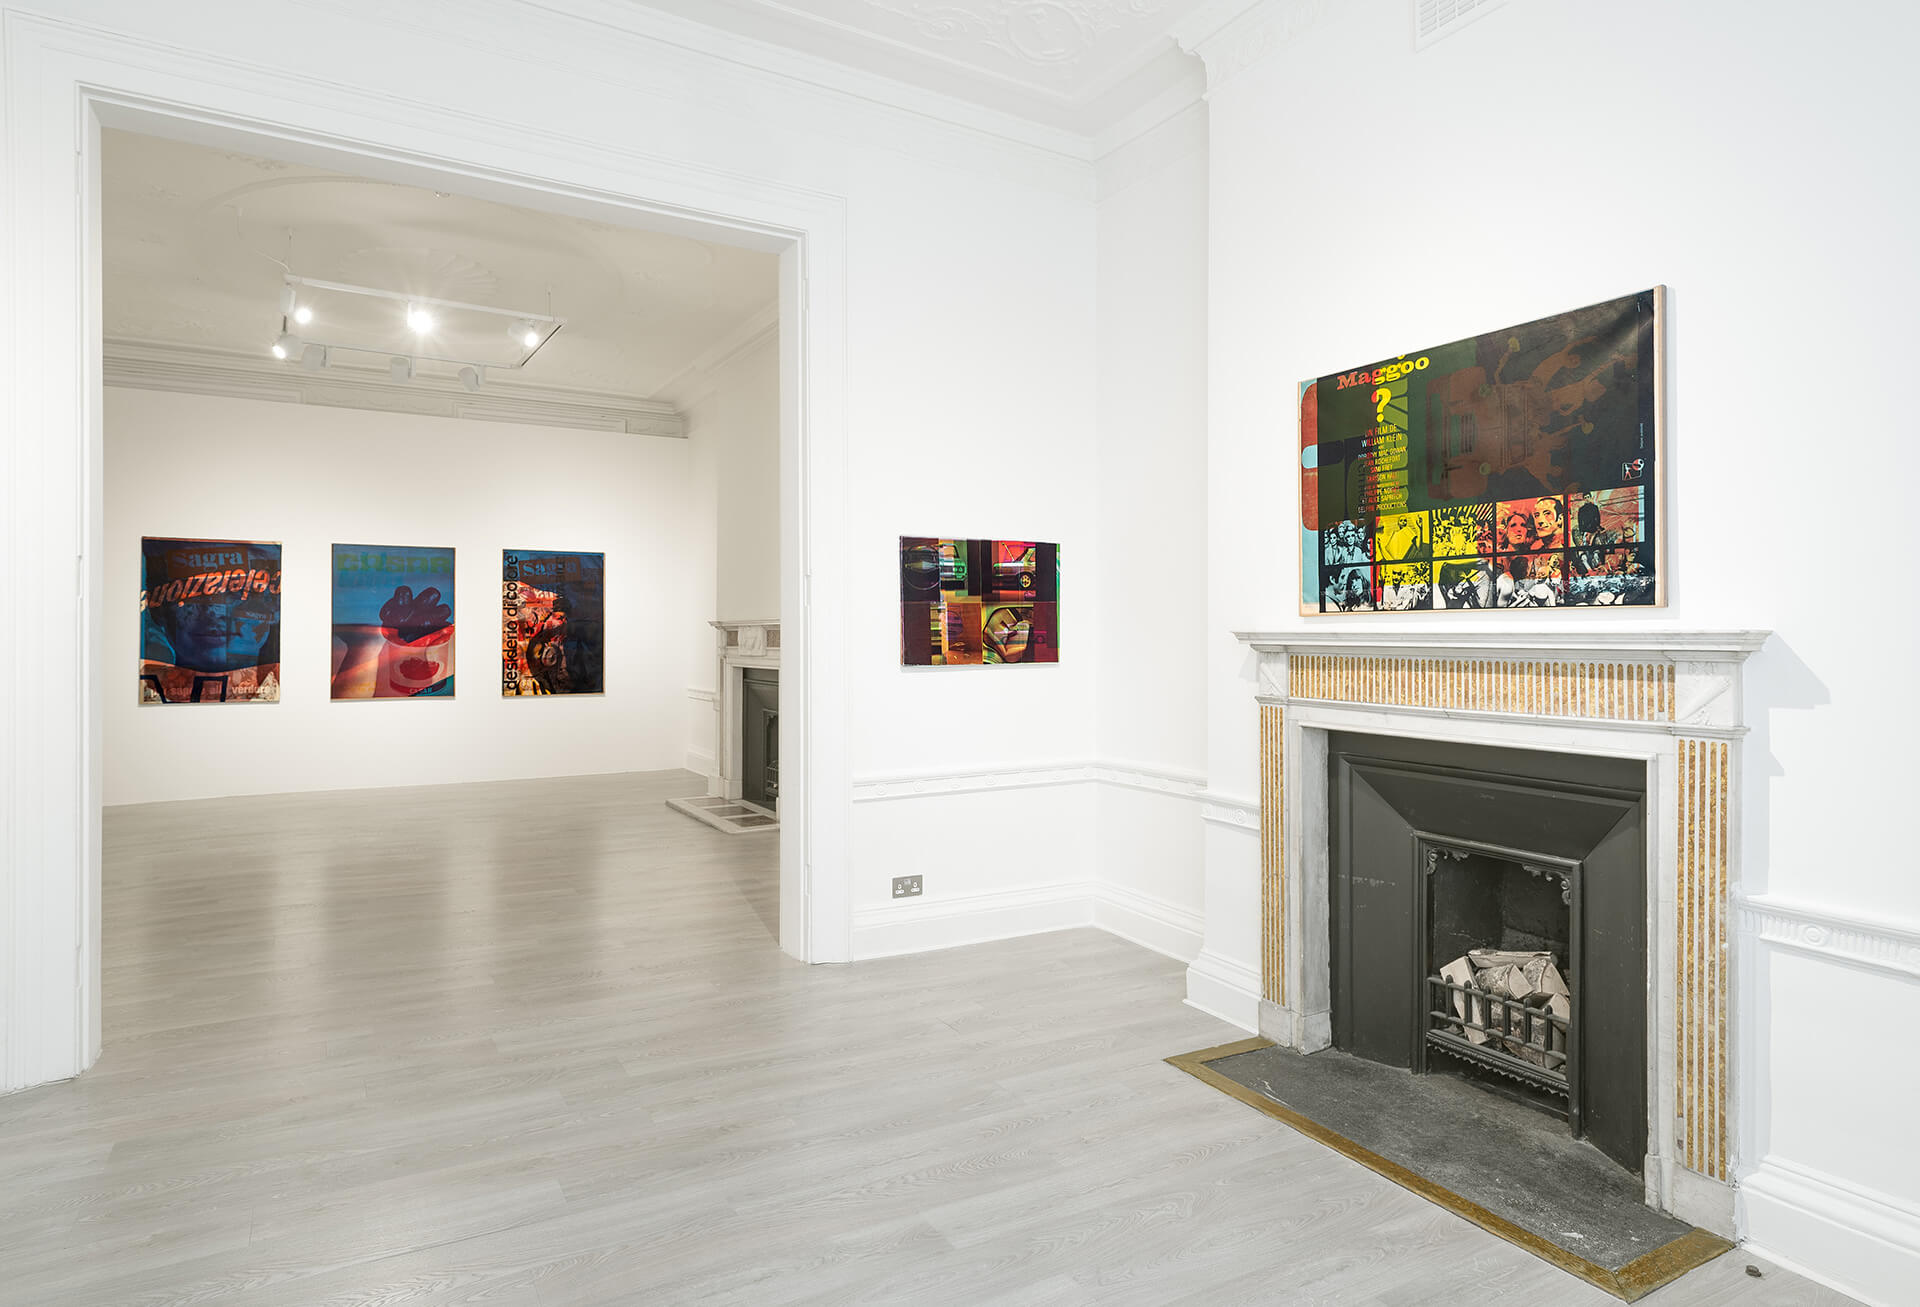 Installation view at Cardi Gallery. Photo by Eric Mouroux for Kitsch Studio | Mimmo Rotella. Beyond Décollage: Photo Emulsions And Artypos 1963 - 1980| Mimmo Rotella | Stirworld